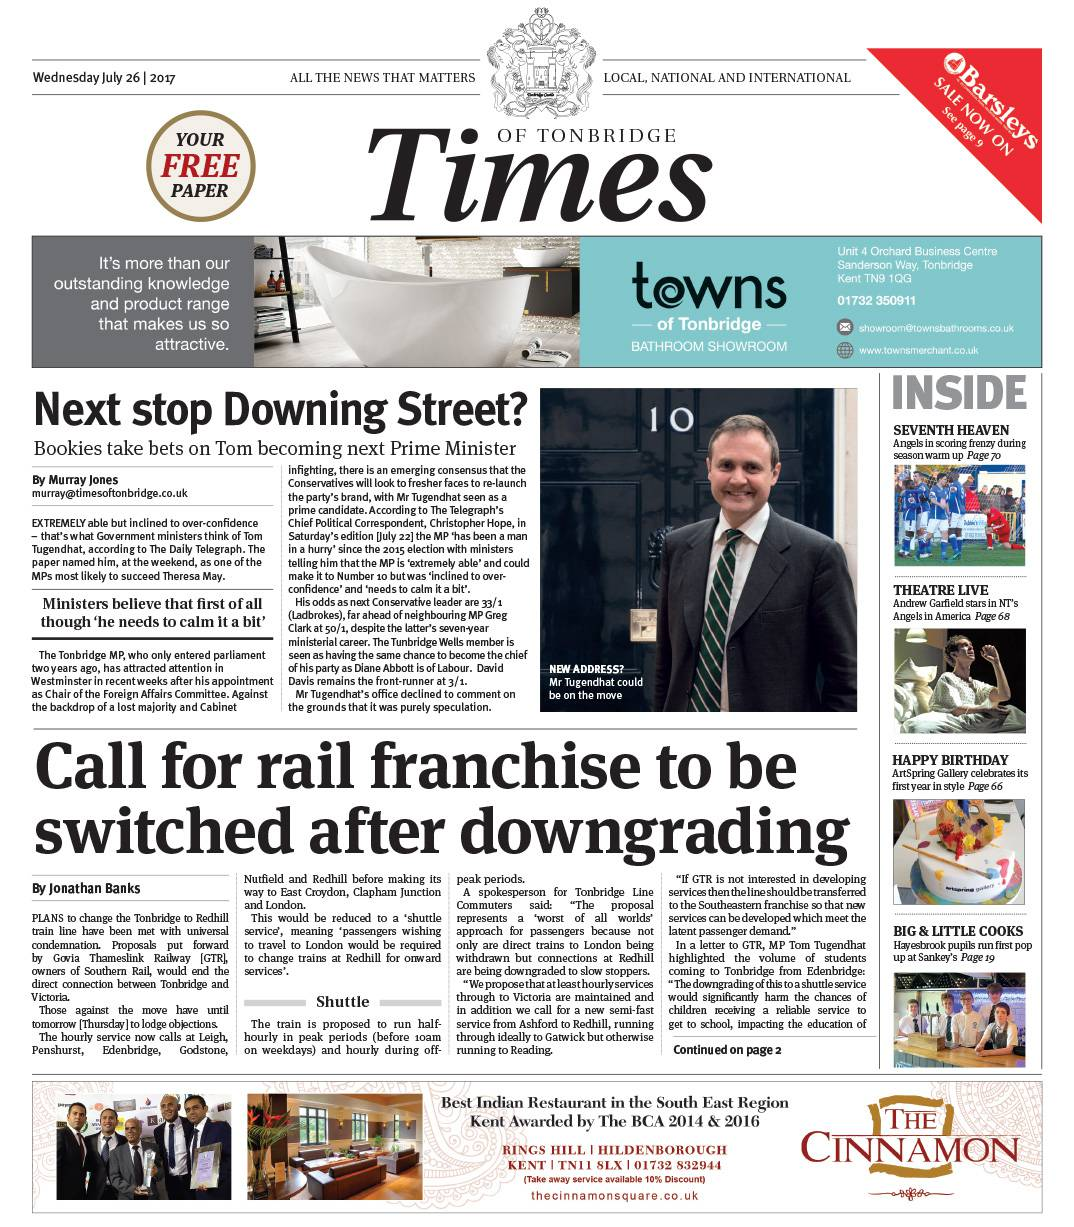 Read the Times of Tonbridge 26th July 2017